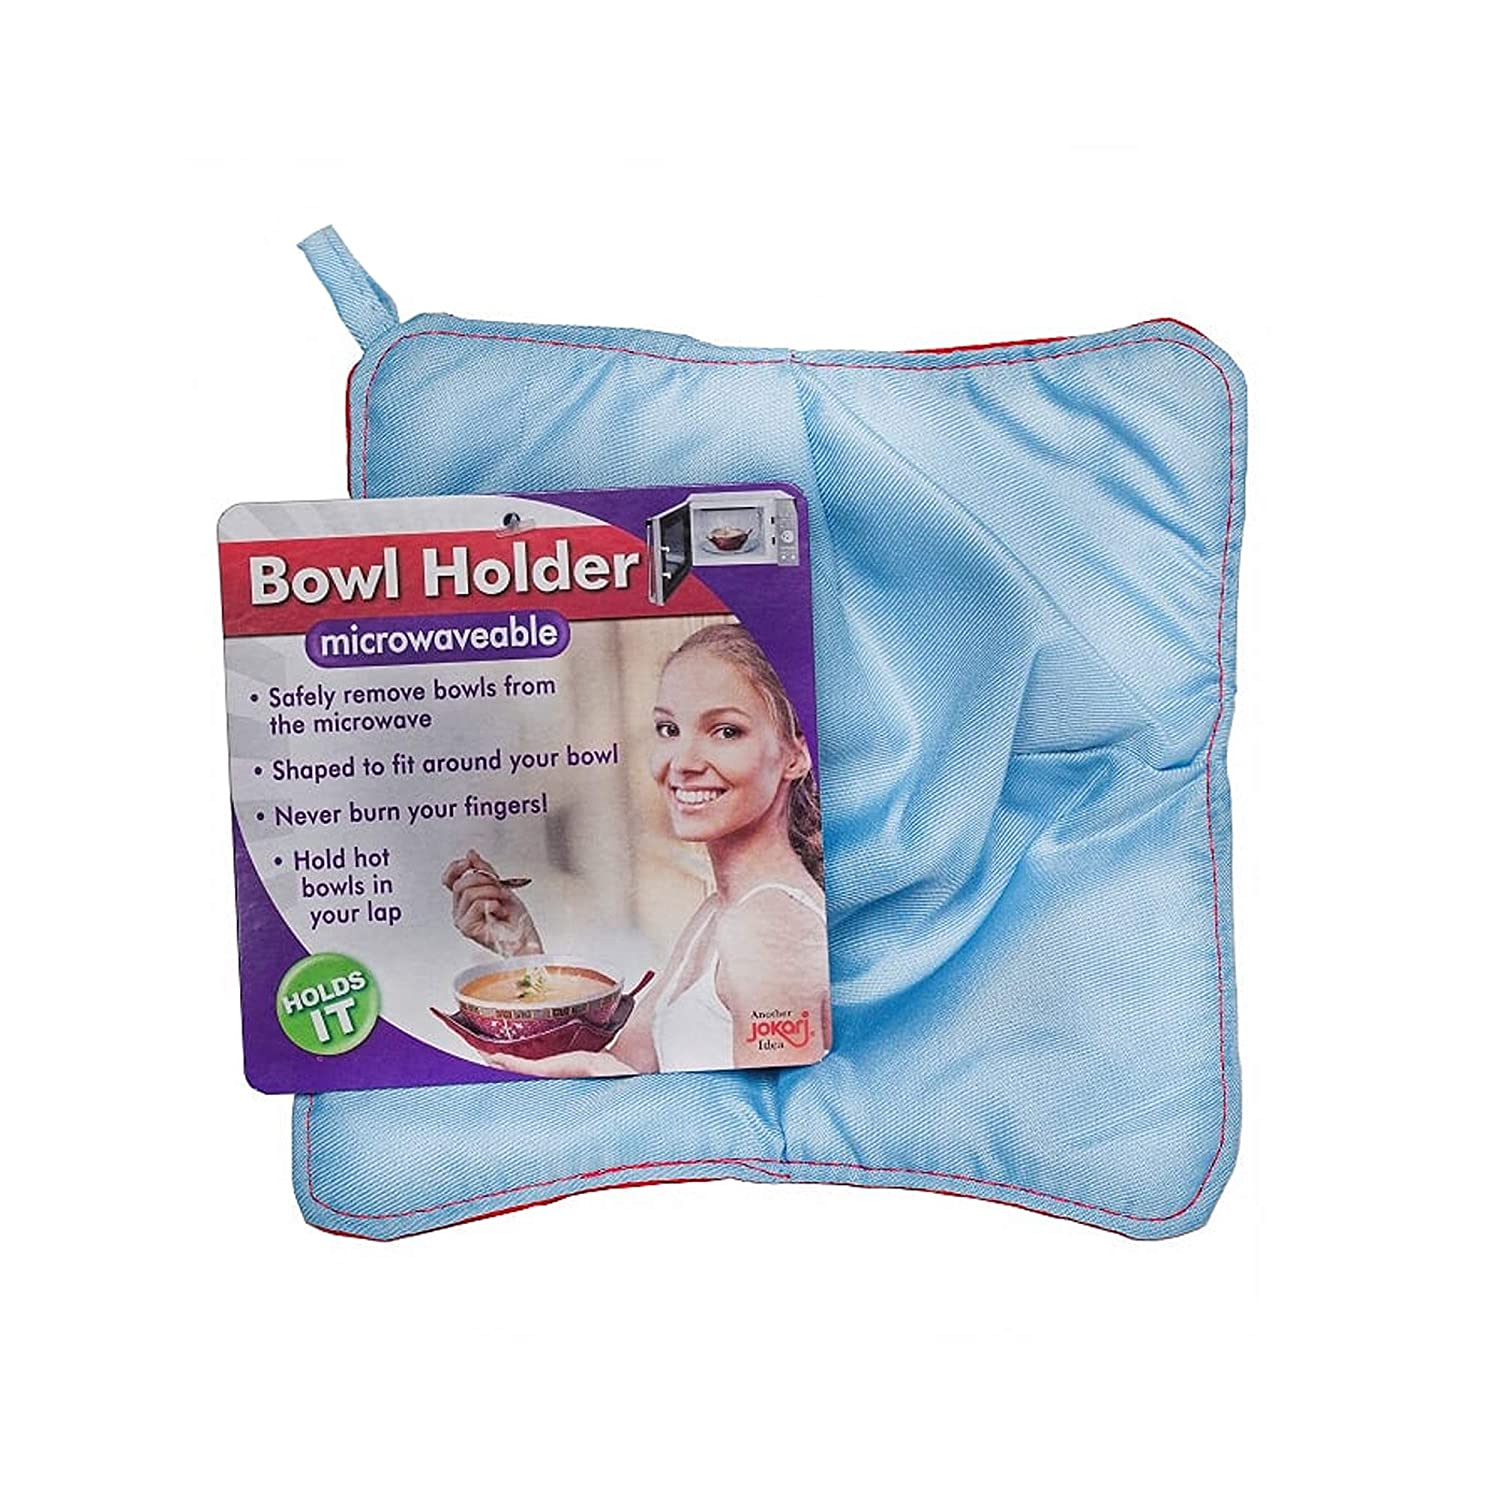 Jokari Bowl Holder, Microwave Safe & Heat Resistant Pad Keeps Hands Cool While Holding Warm Heated Containers, Reusable and Washable, Never Burn Your Fingers Again (4 Pack)